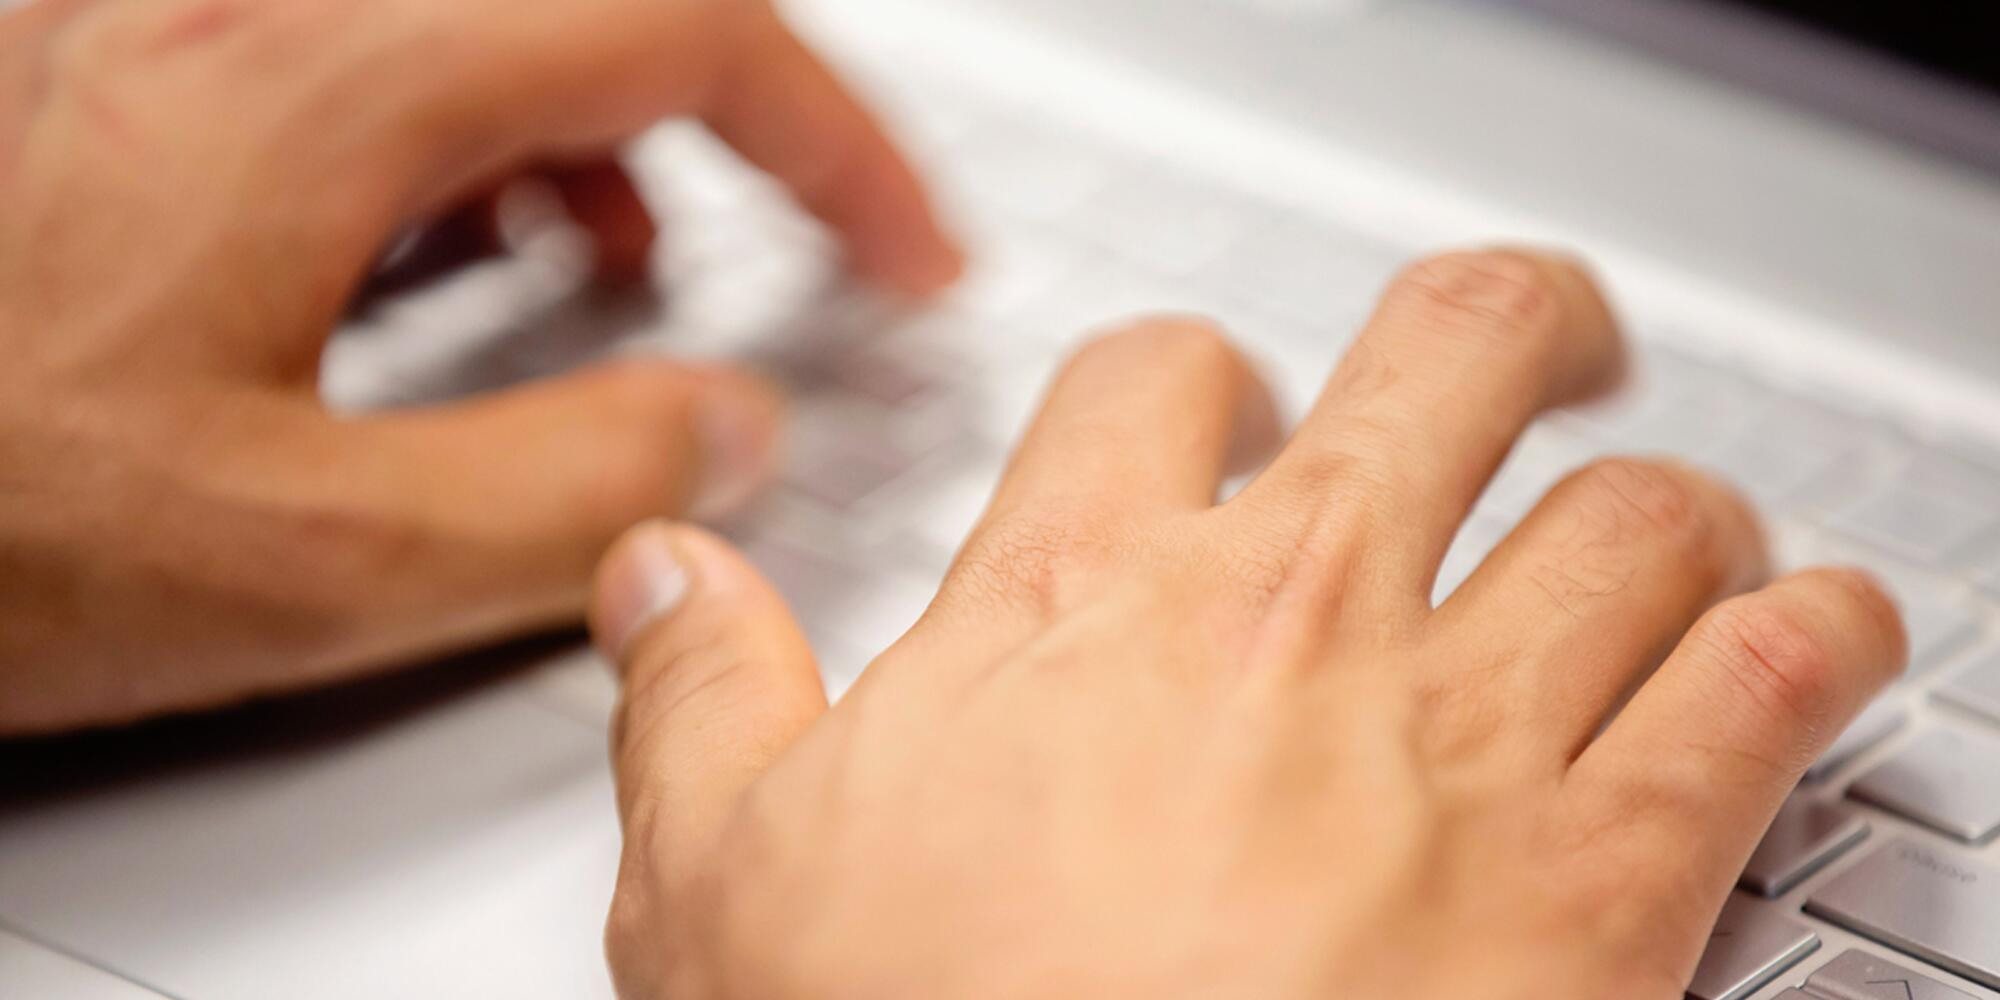 Photo of hands typing on a keyboard.